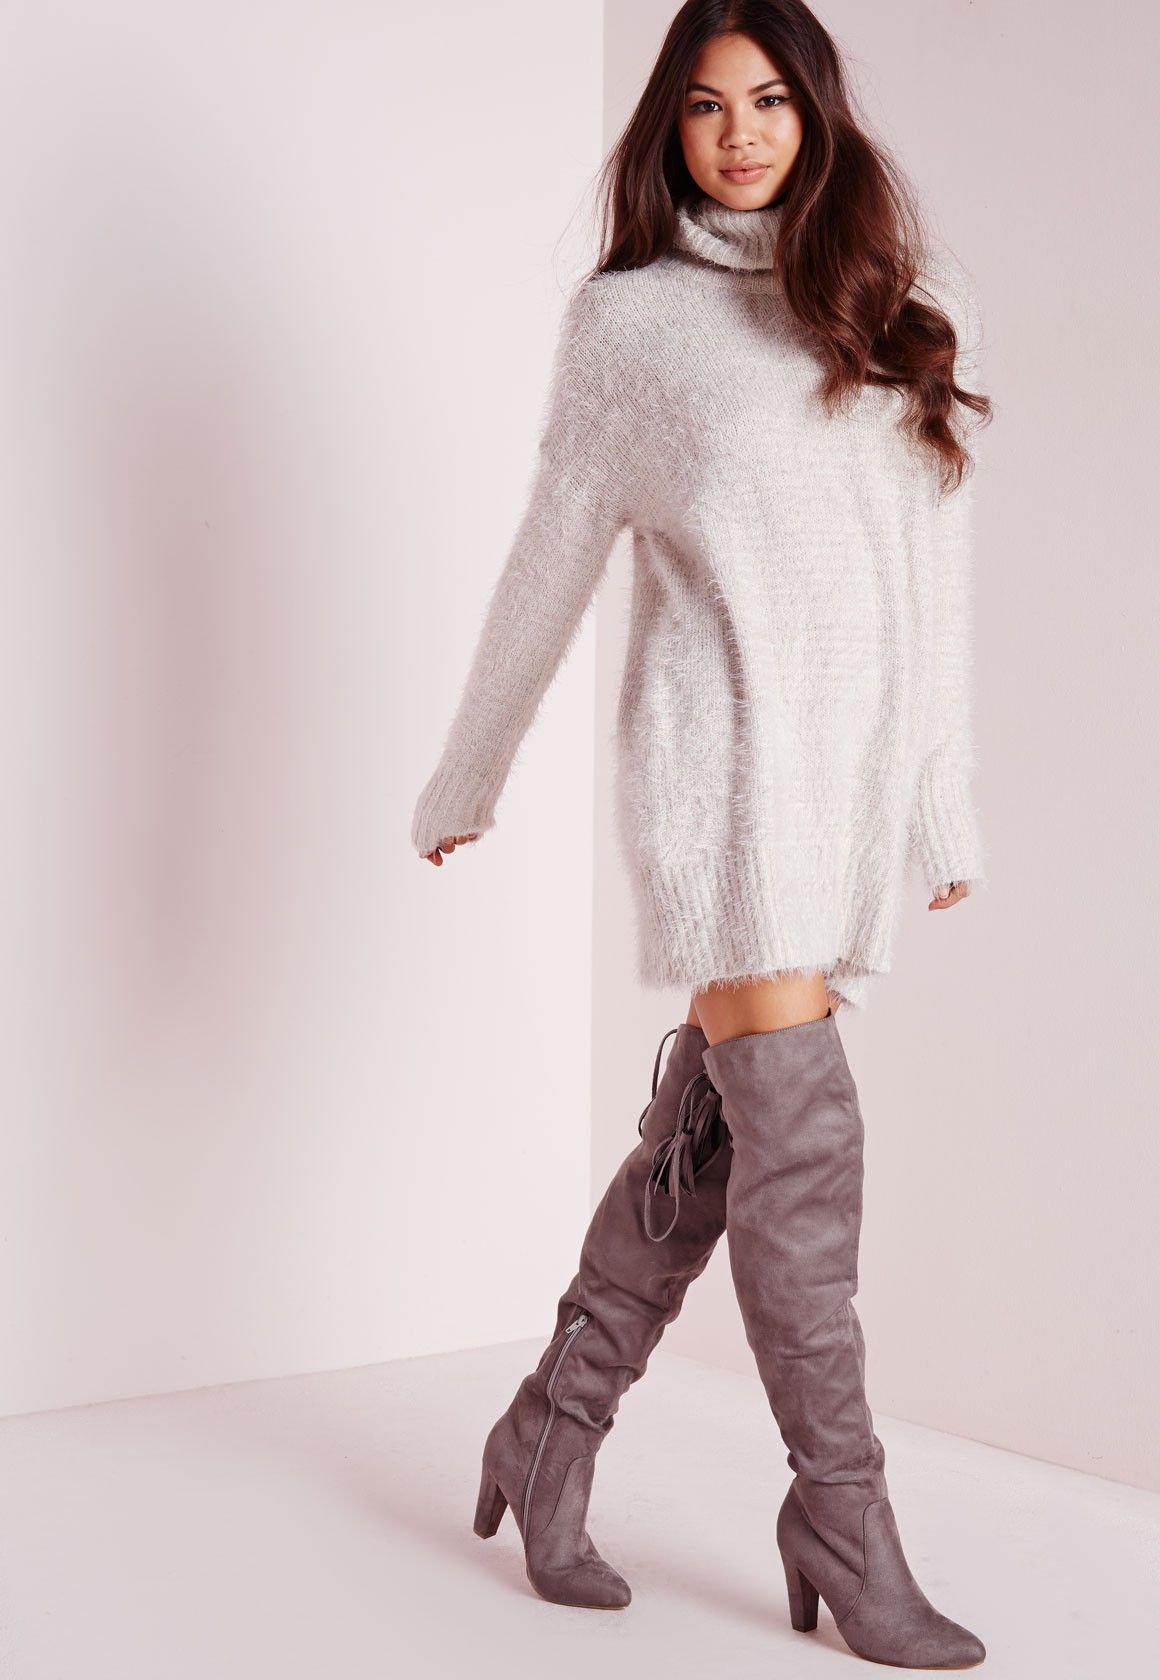 b7676d37acd Robe-pull en laine poilue grise col roulé - Tricots - Robes-pull -  Missguided